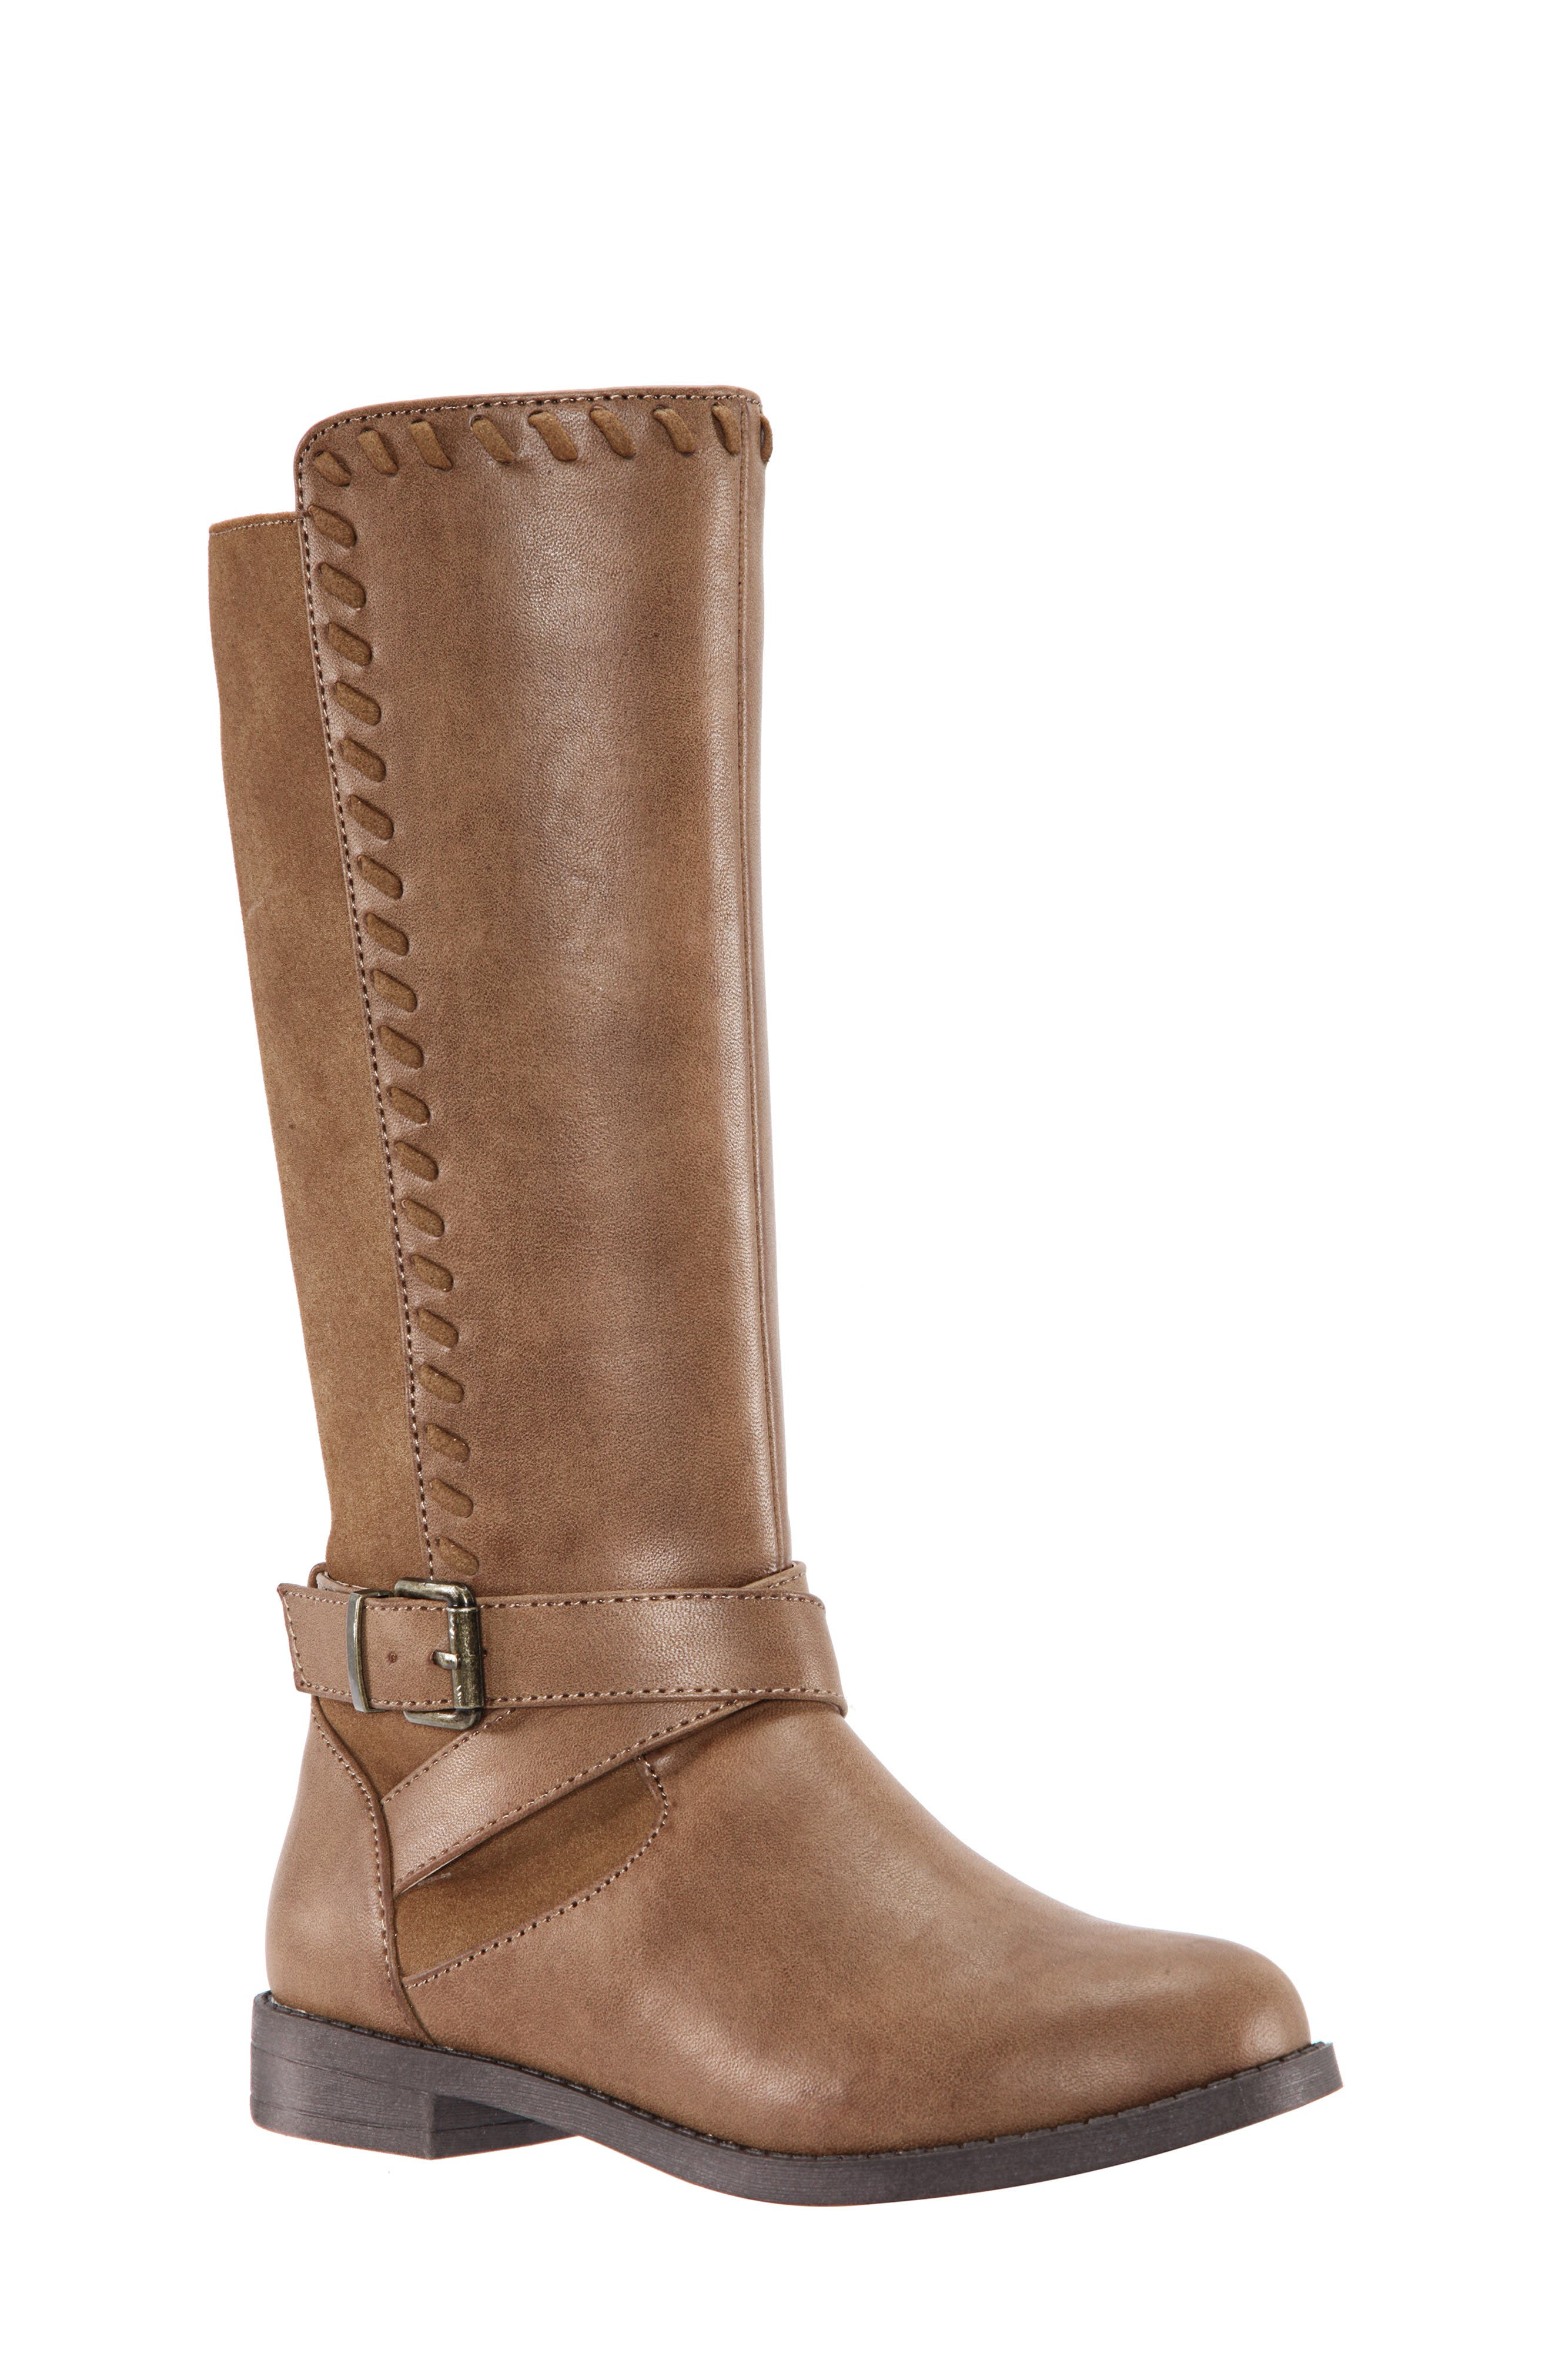 Jeanie Riding Boot,                         Main,                         color, SADDLE BURNISHED